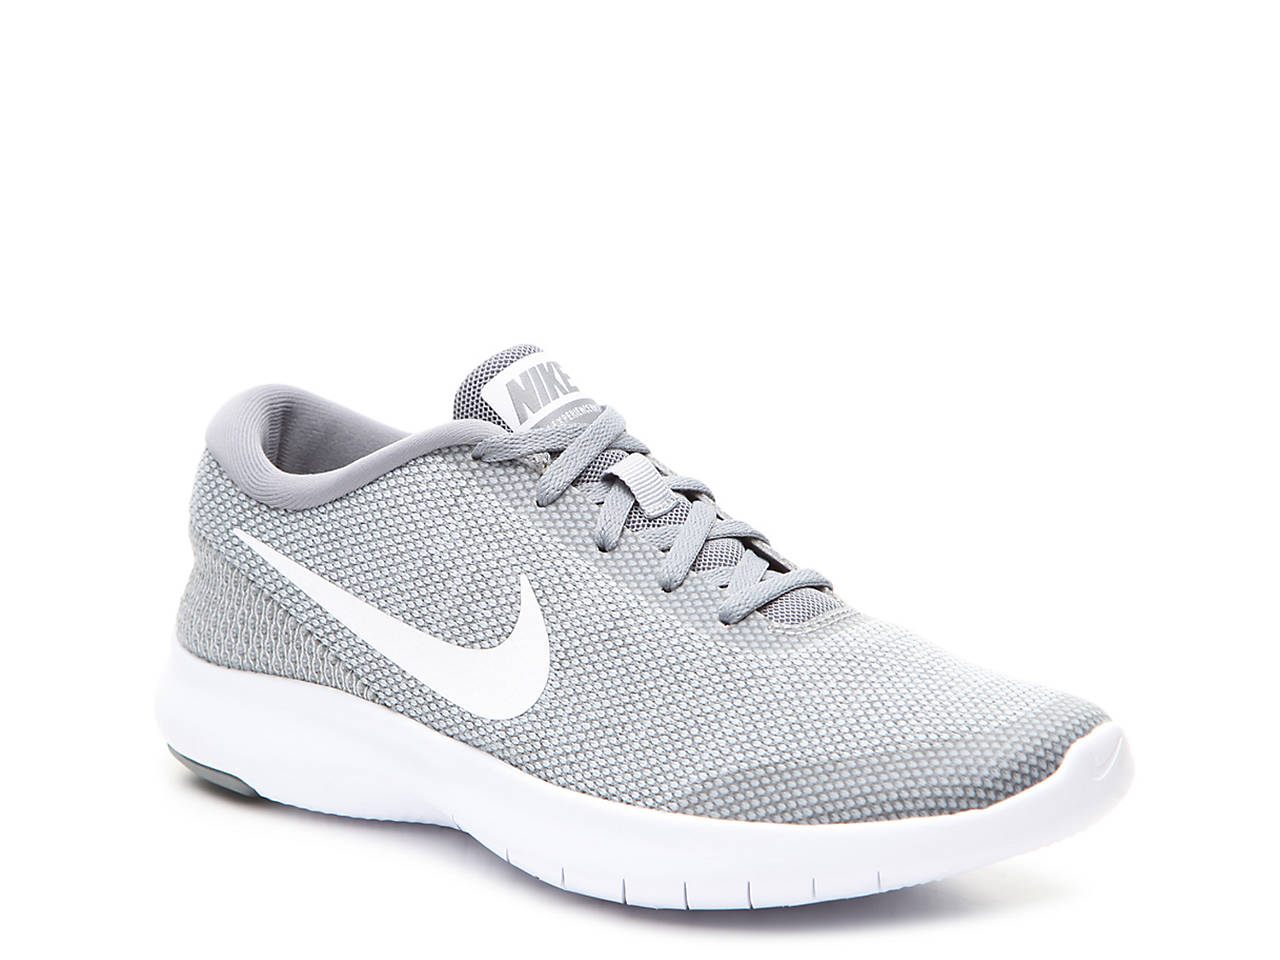 separation shoes eca01 e114c Nike. Flex Experience RN 7 Lightweight Running Shoe - Women s